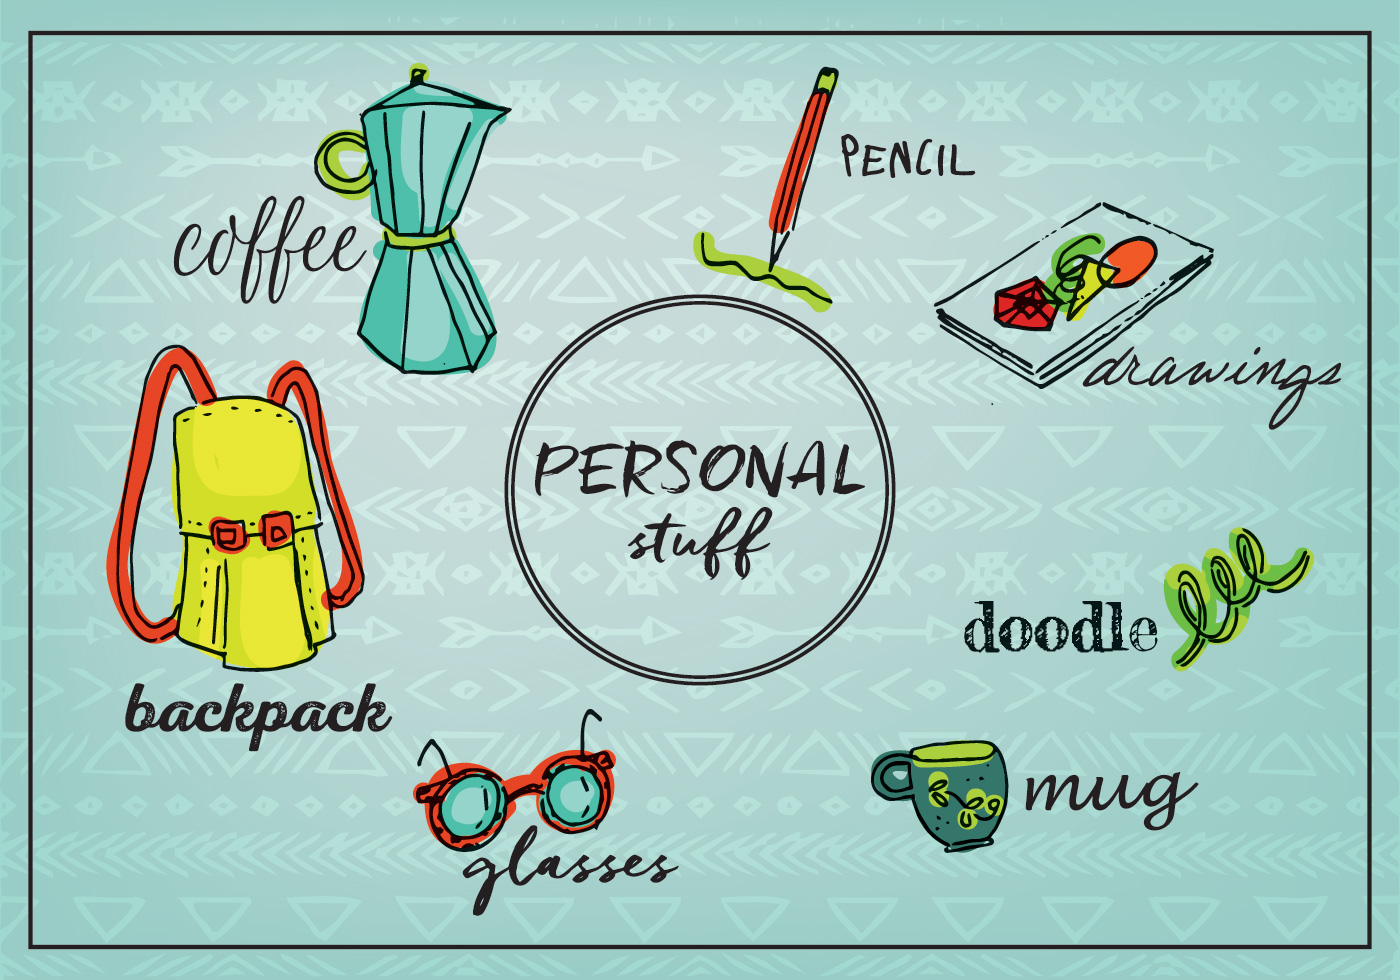 Free Personal Stuff Objects Background Download Free